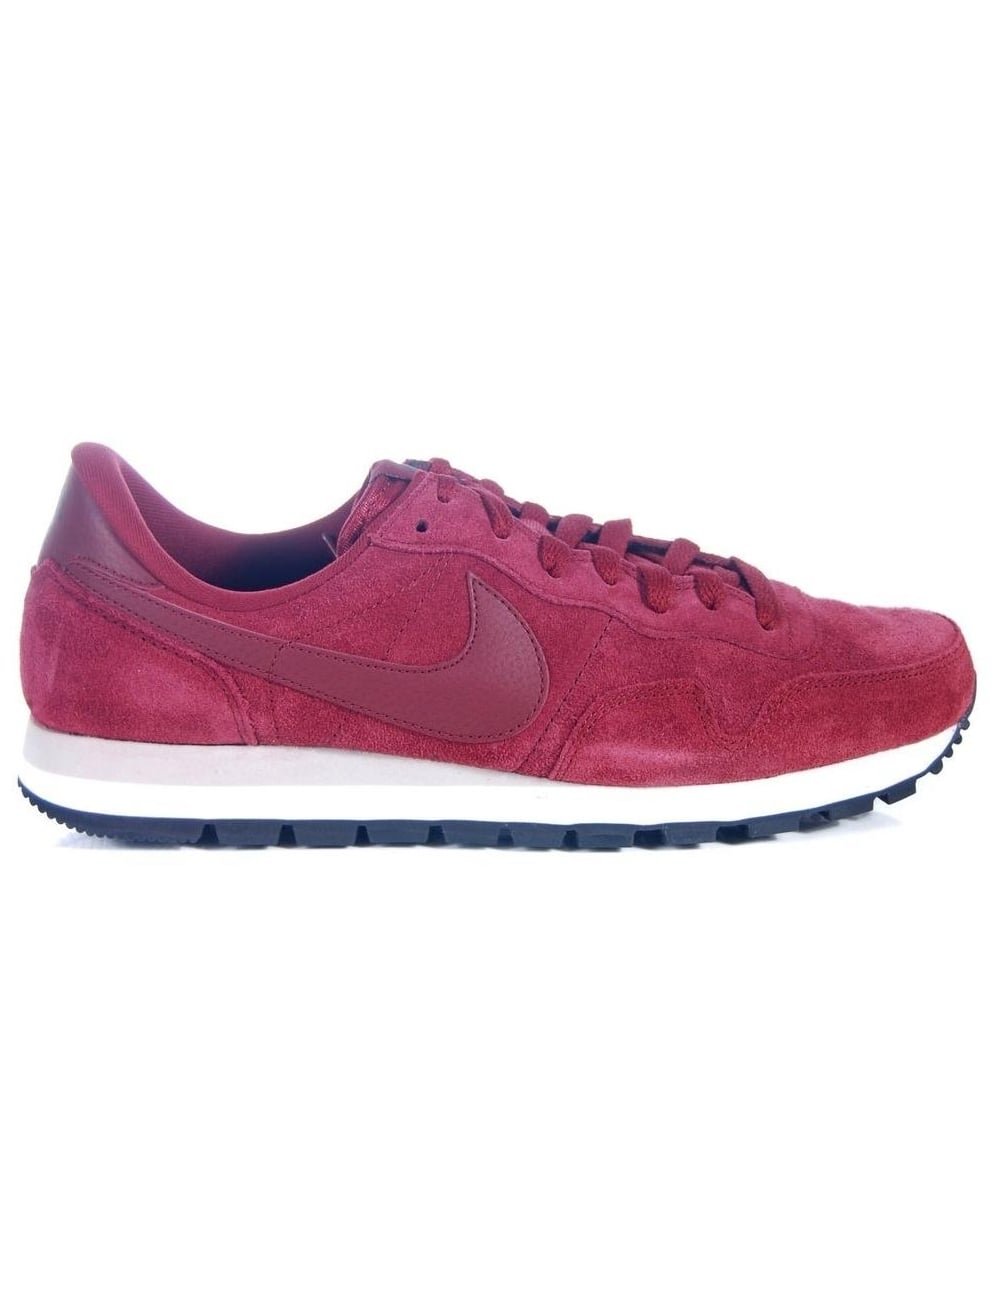 c4b57d6a328c Nike Air Pegasus 83 Suede - Team Red - Footwear from Fat Buddha Store UK